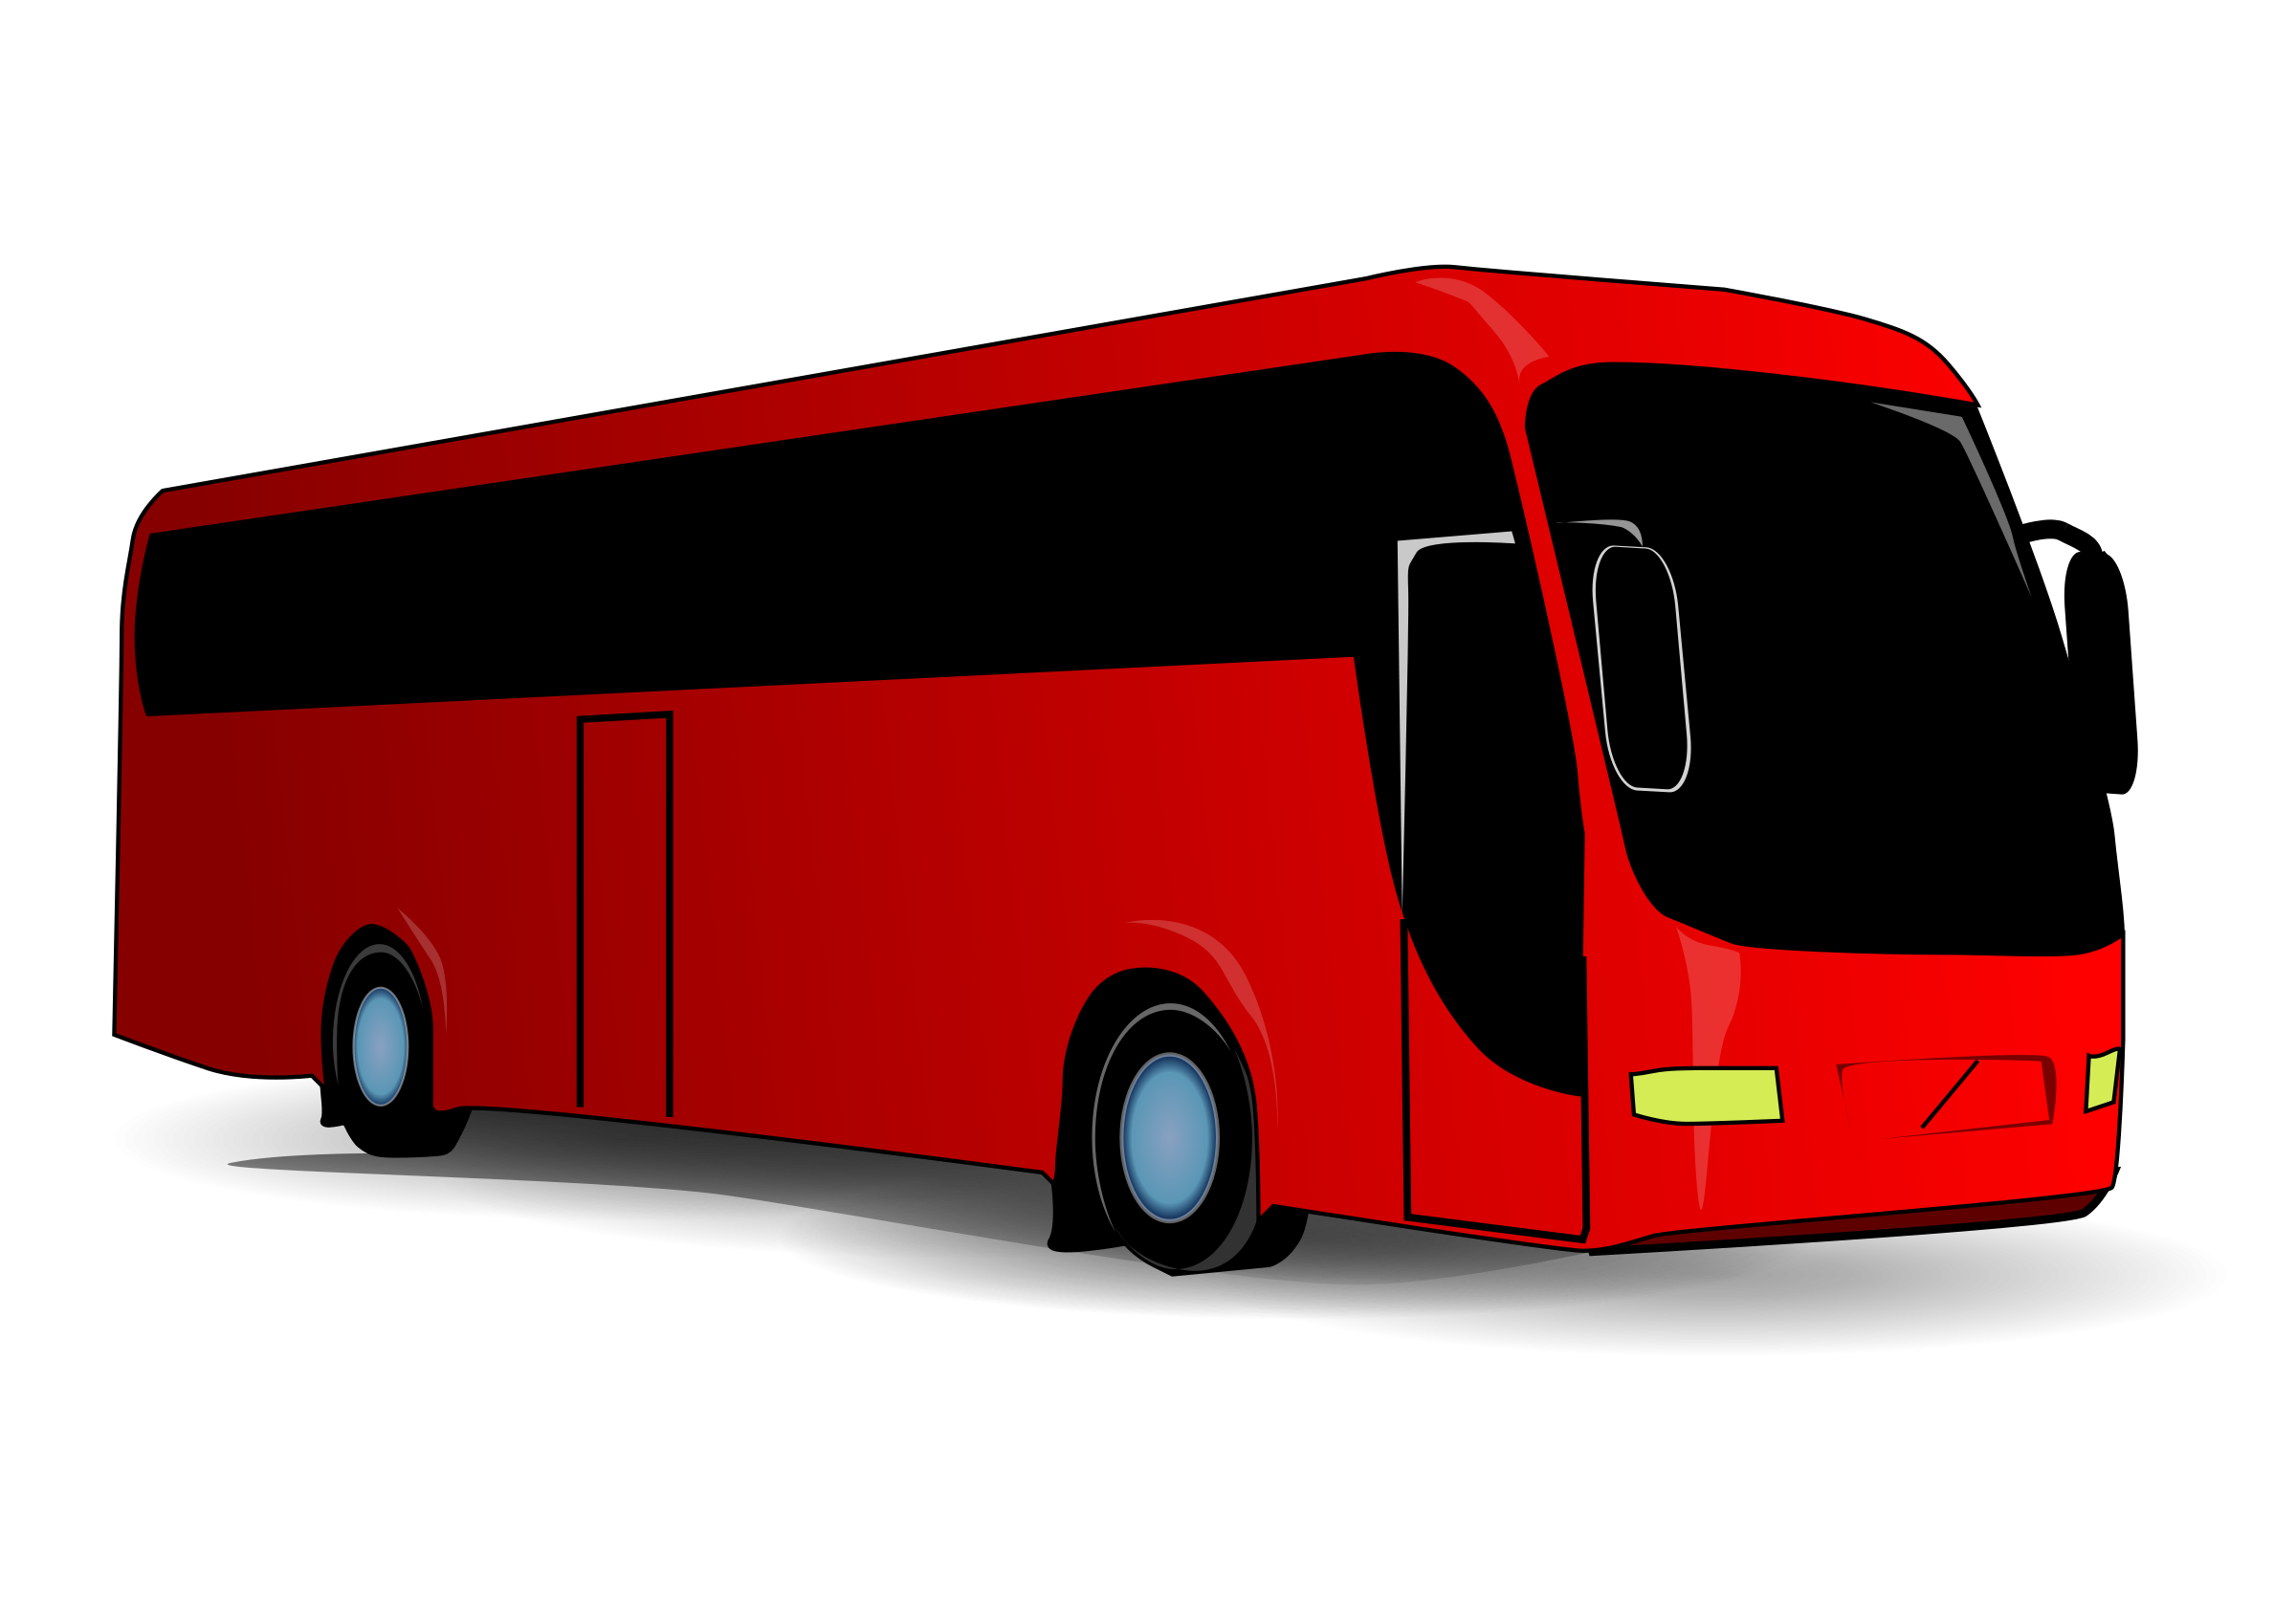 Red Bus Png Image Red Bus Bus Tickets Bus